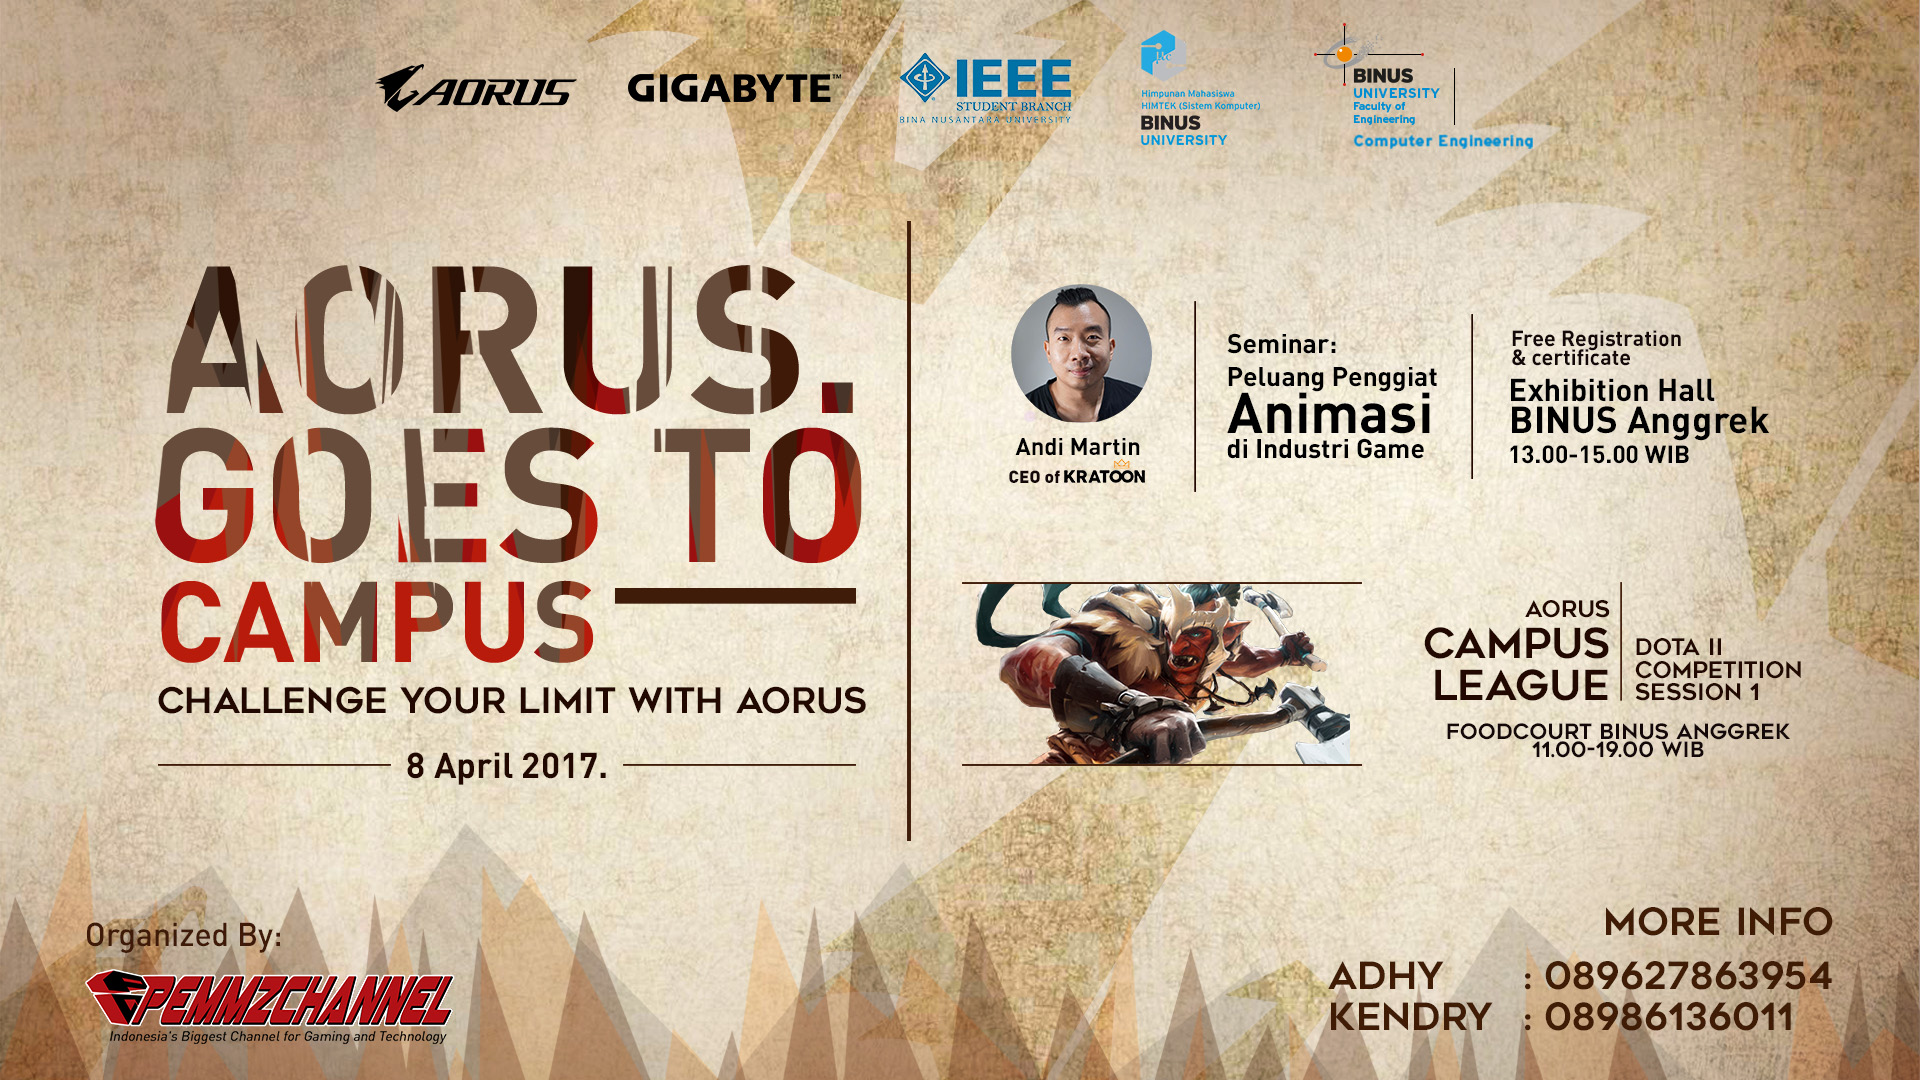 Aorus goes to campus pemmzchannel